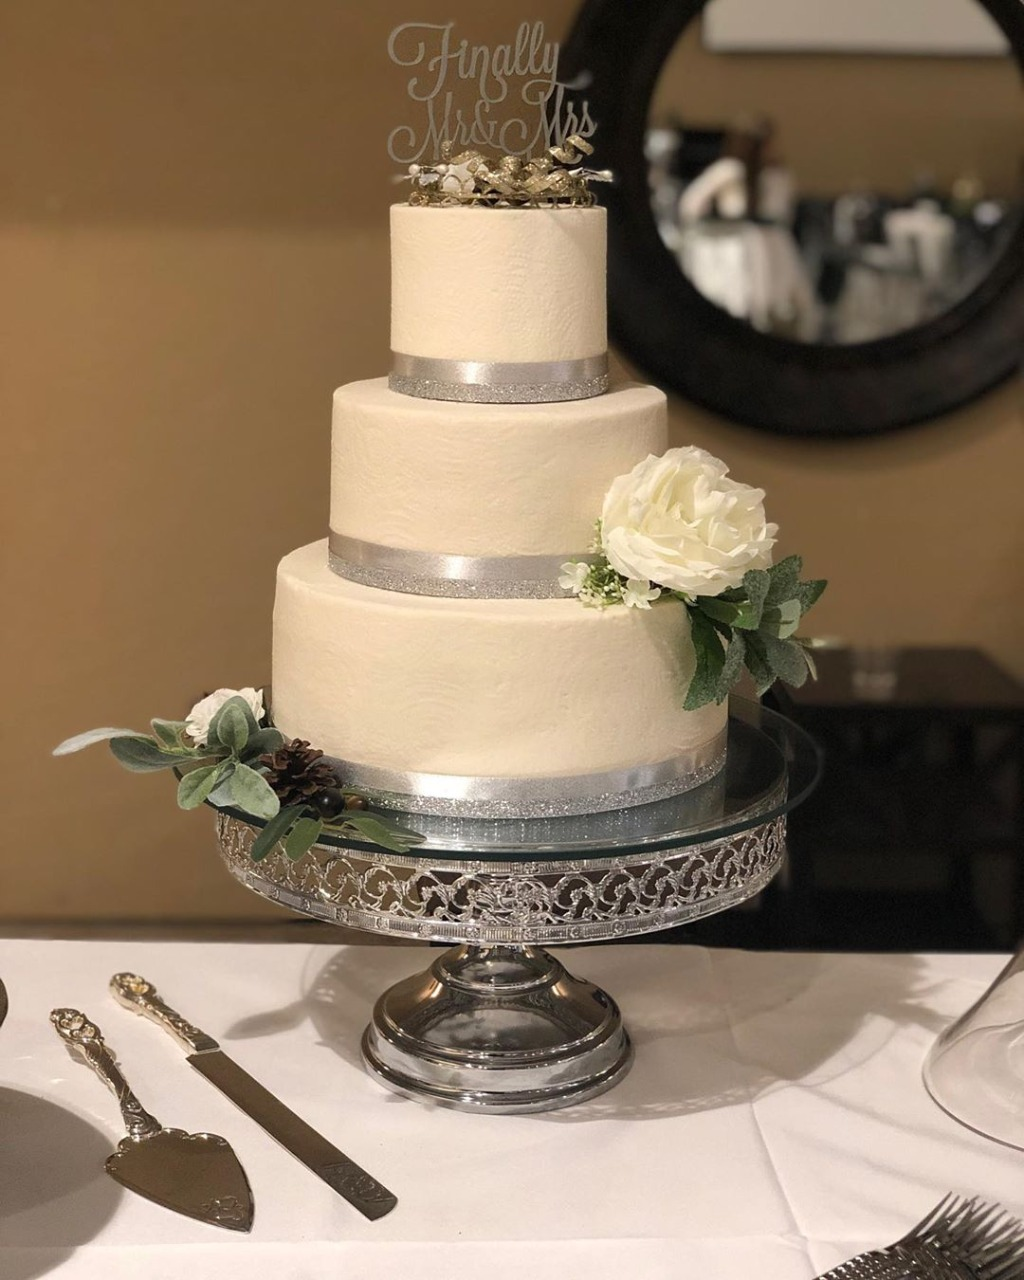 Classic Ivory Wedding Cake with Silver Accents! Wedding Cake by Mishelle Handy Cakes on an Opulent Treasures Shiny Silver Wedding Cake